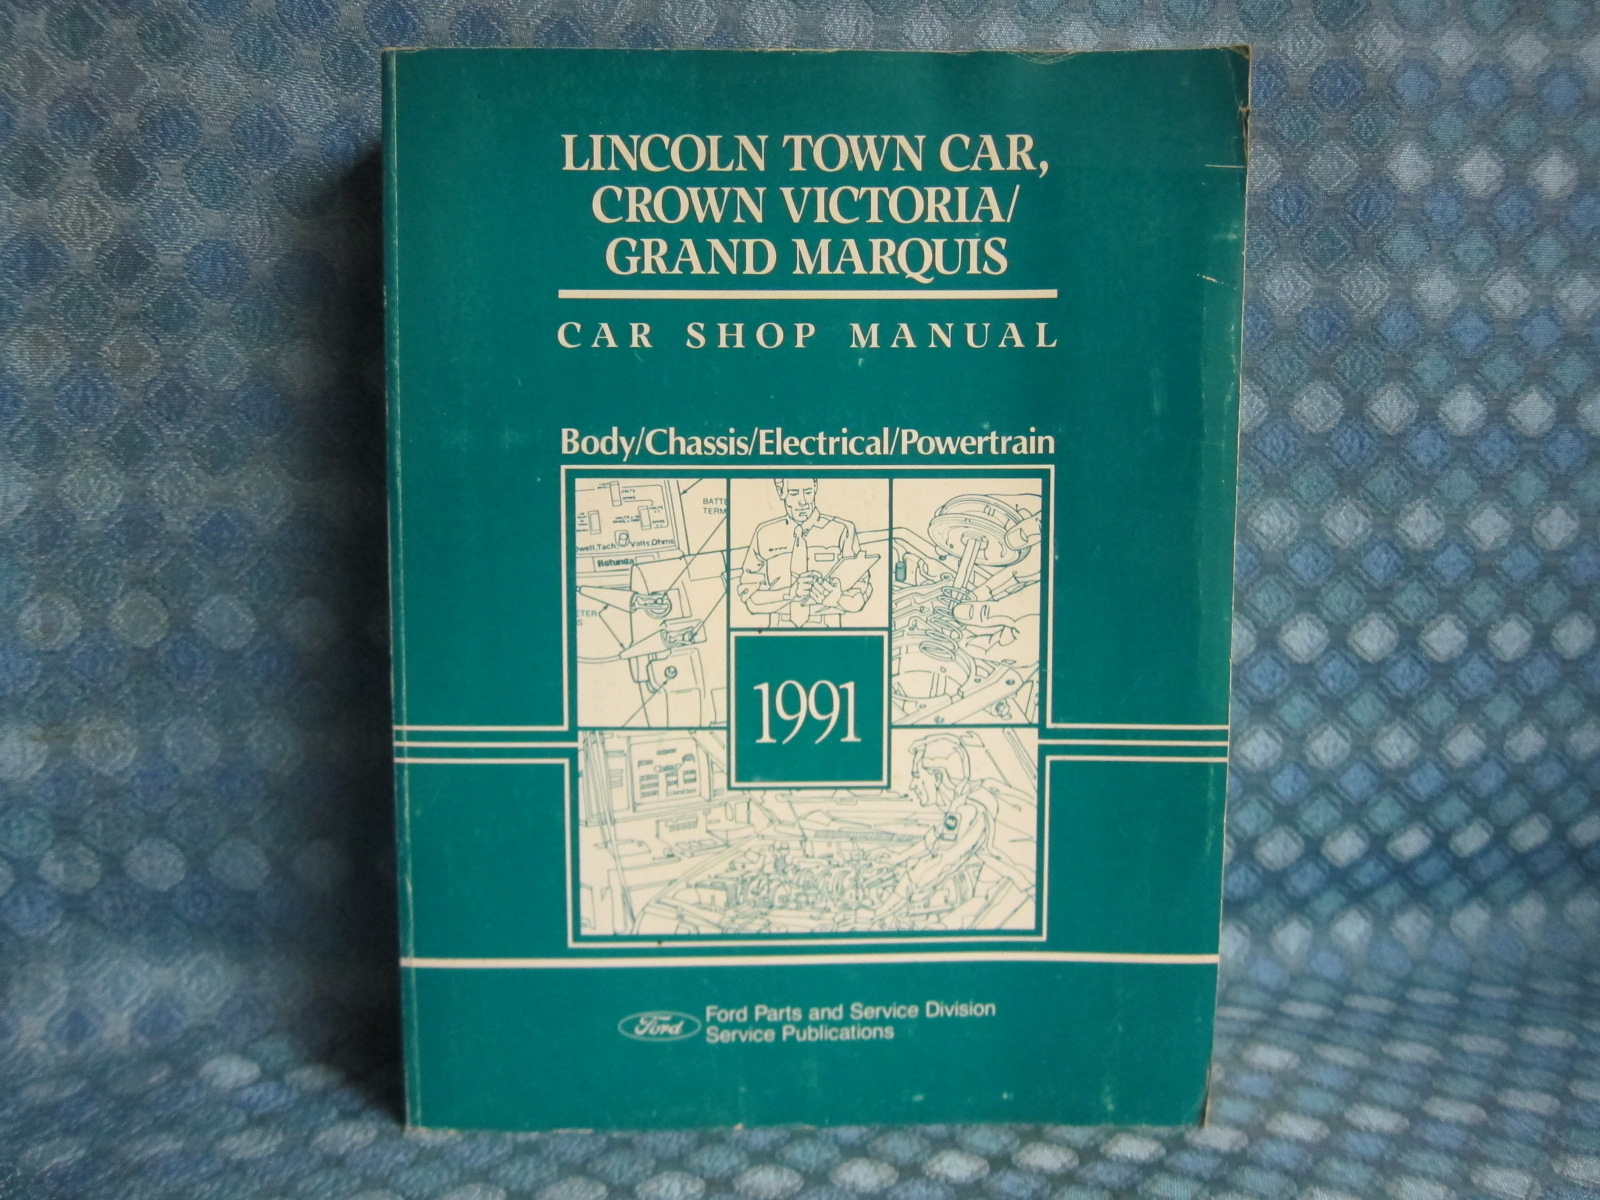 Ford Crown Victoria Body Parts Diagram Electrical Wiring Diagrams 1991 Lincoln Town Car Grand Marquis Original Front Suspension